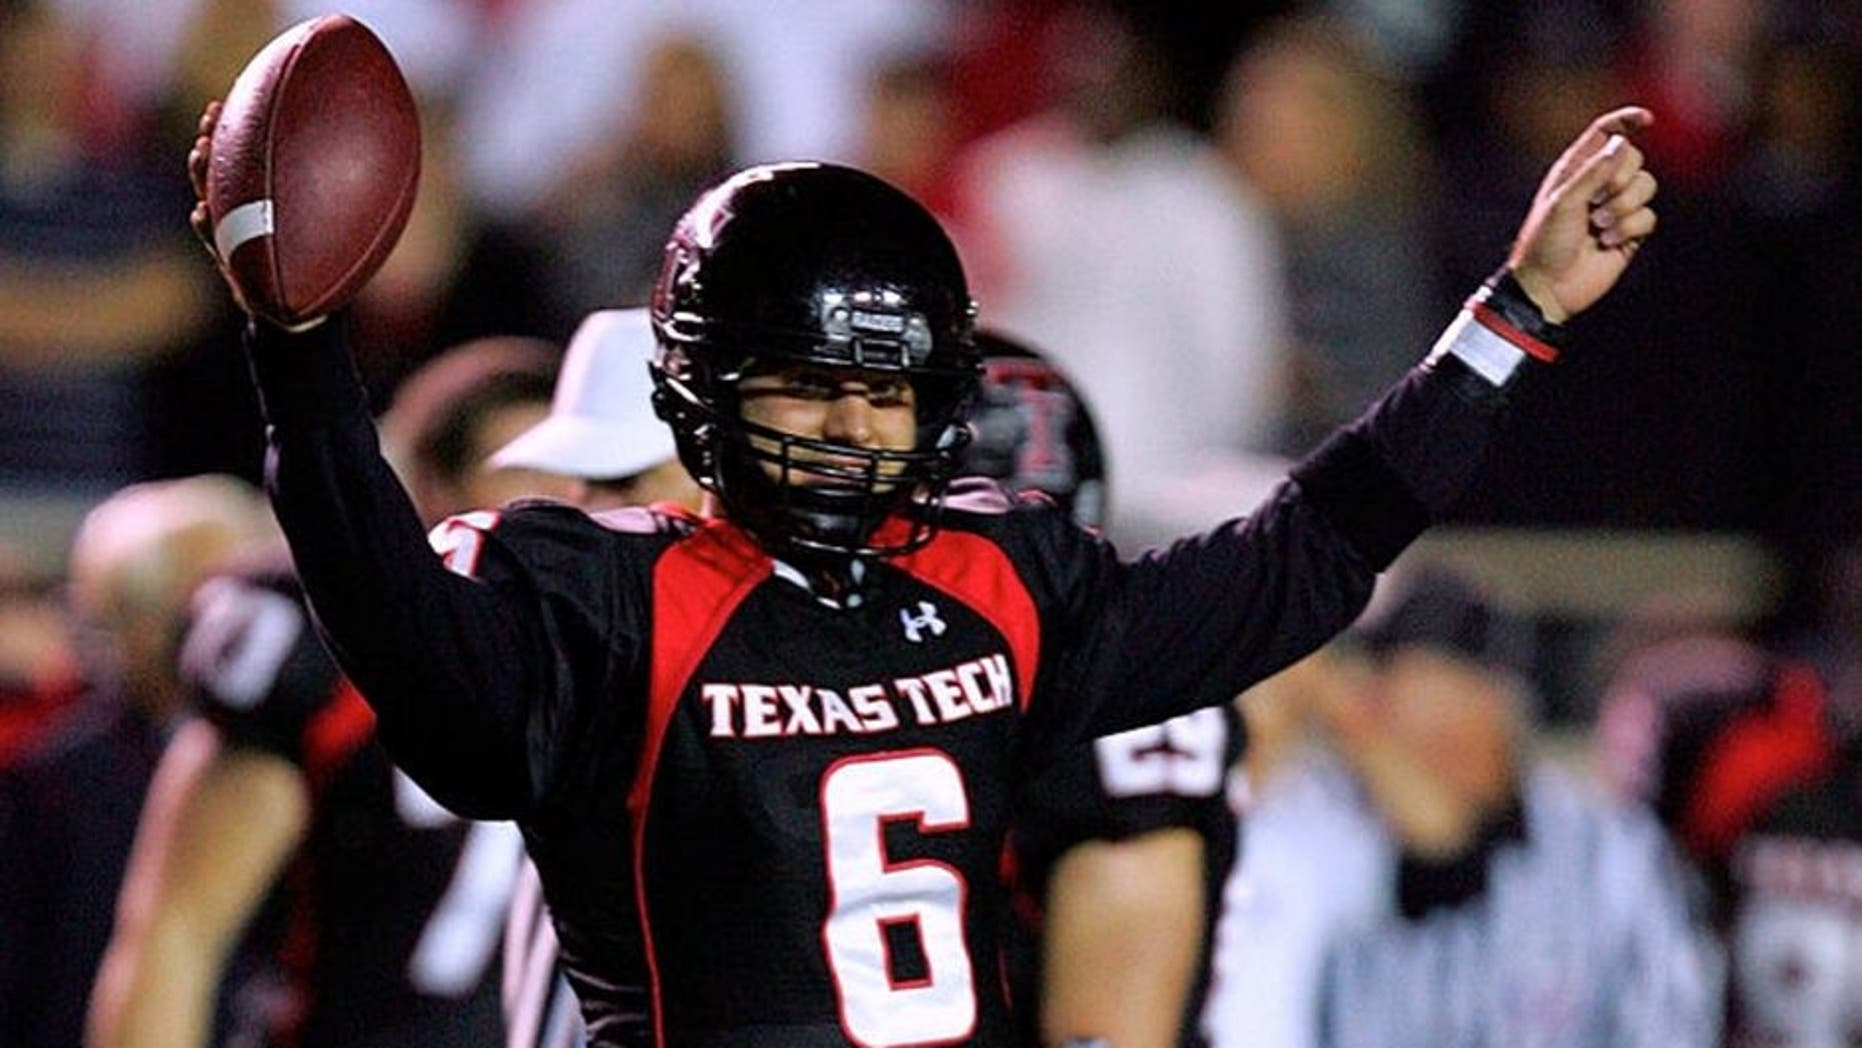 LUBBOCK, TX - NOVEMBER 17: Quarterback Graham Harrell #6 of the Texas Tech Red Raiders reacts after a 34-27 win against the Oklahoma Sooners at Jones AT&T Stadium on November 17, 2007 in Lubbock, Texas. (Photo by Ronald Martinez/Getty Images)